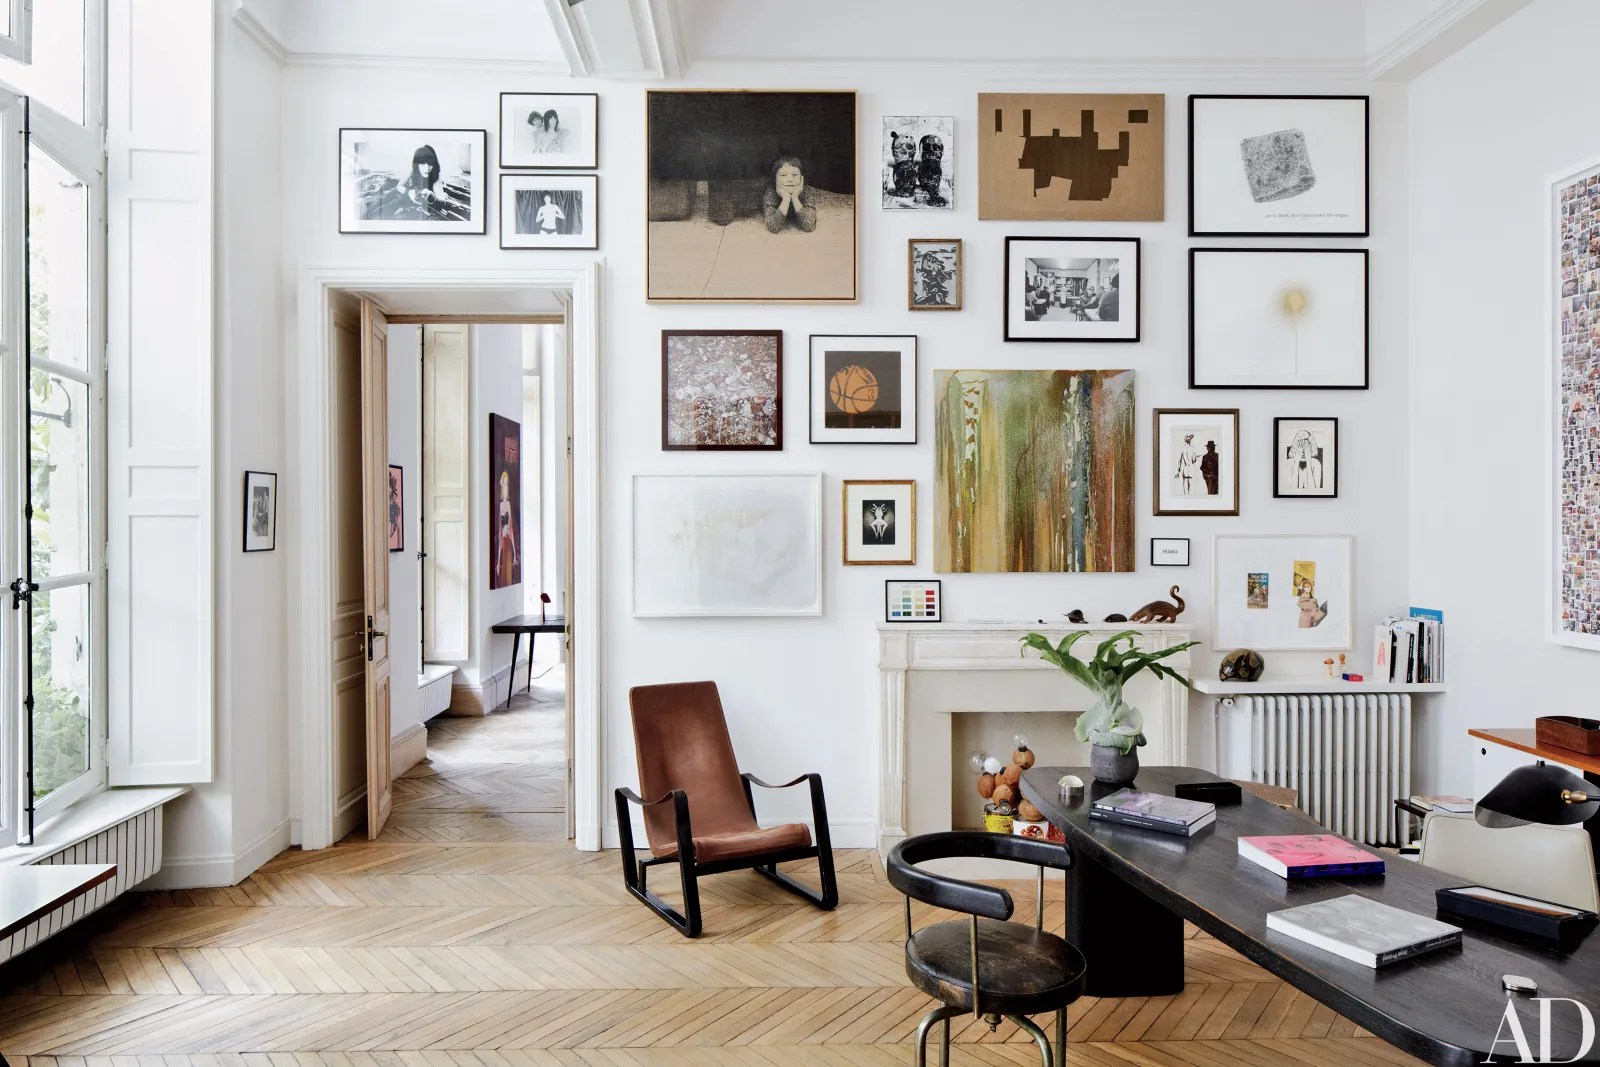 14 Wall Decor Ideas to Refresh Your Space  Architectural Digest